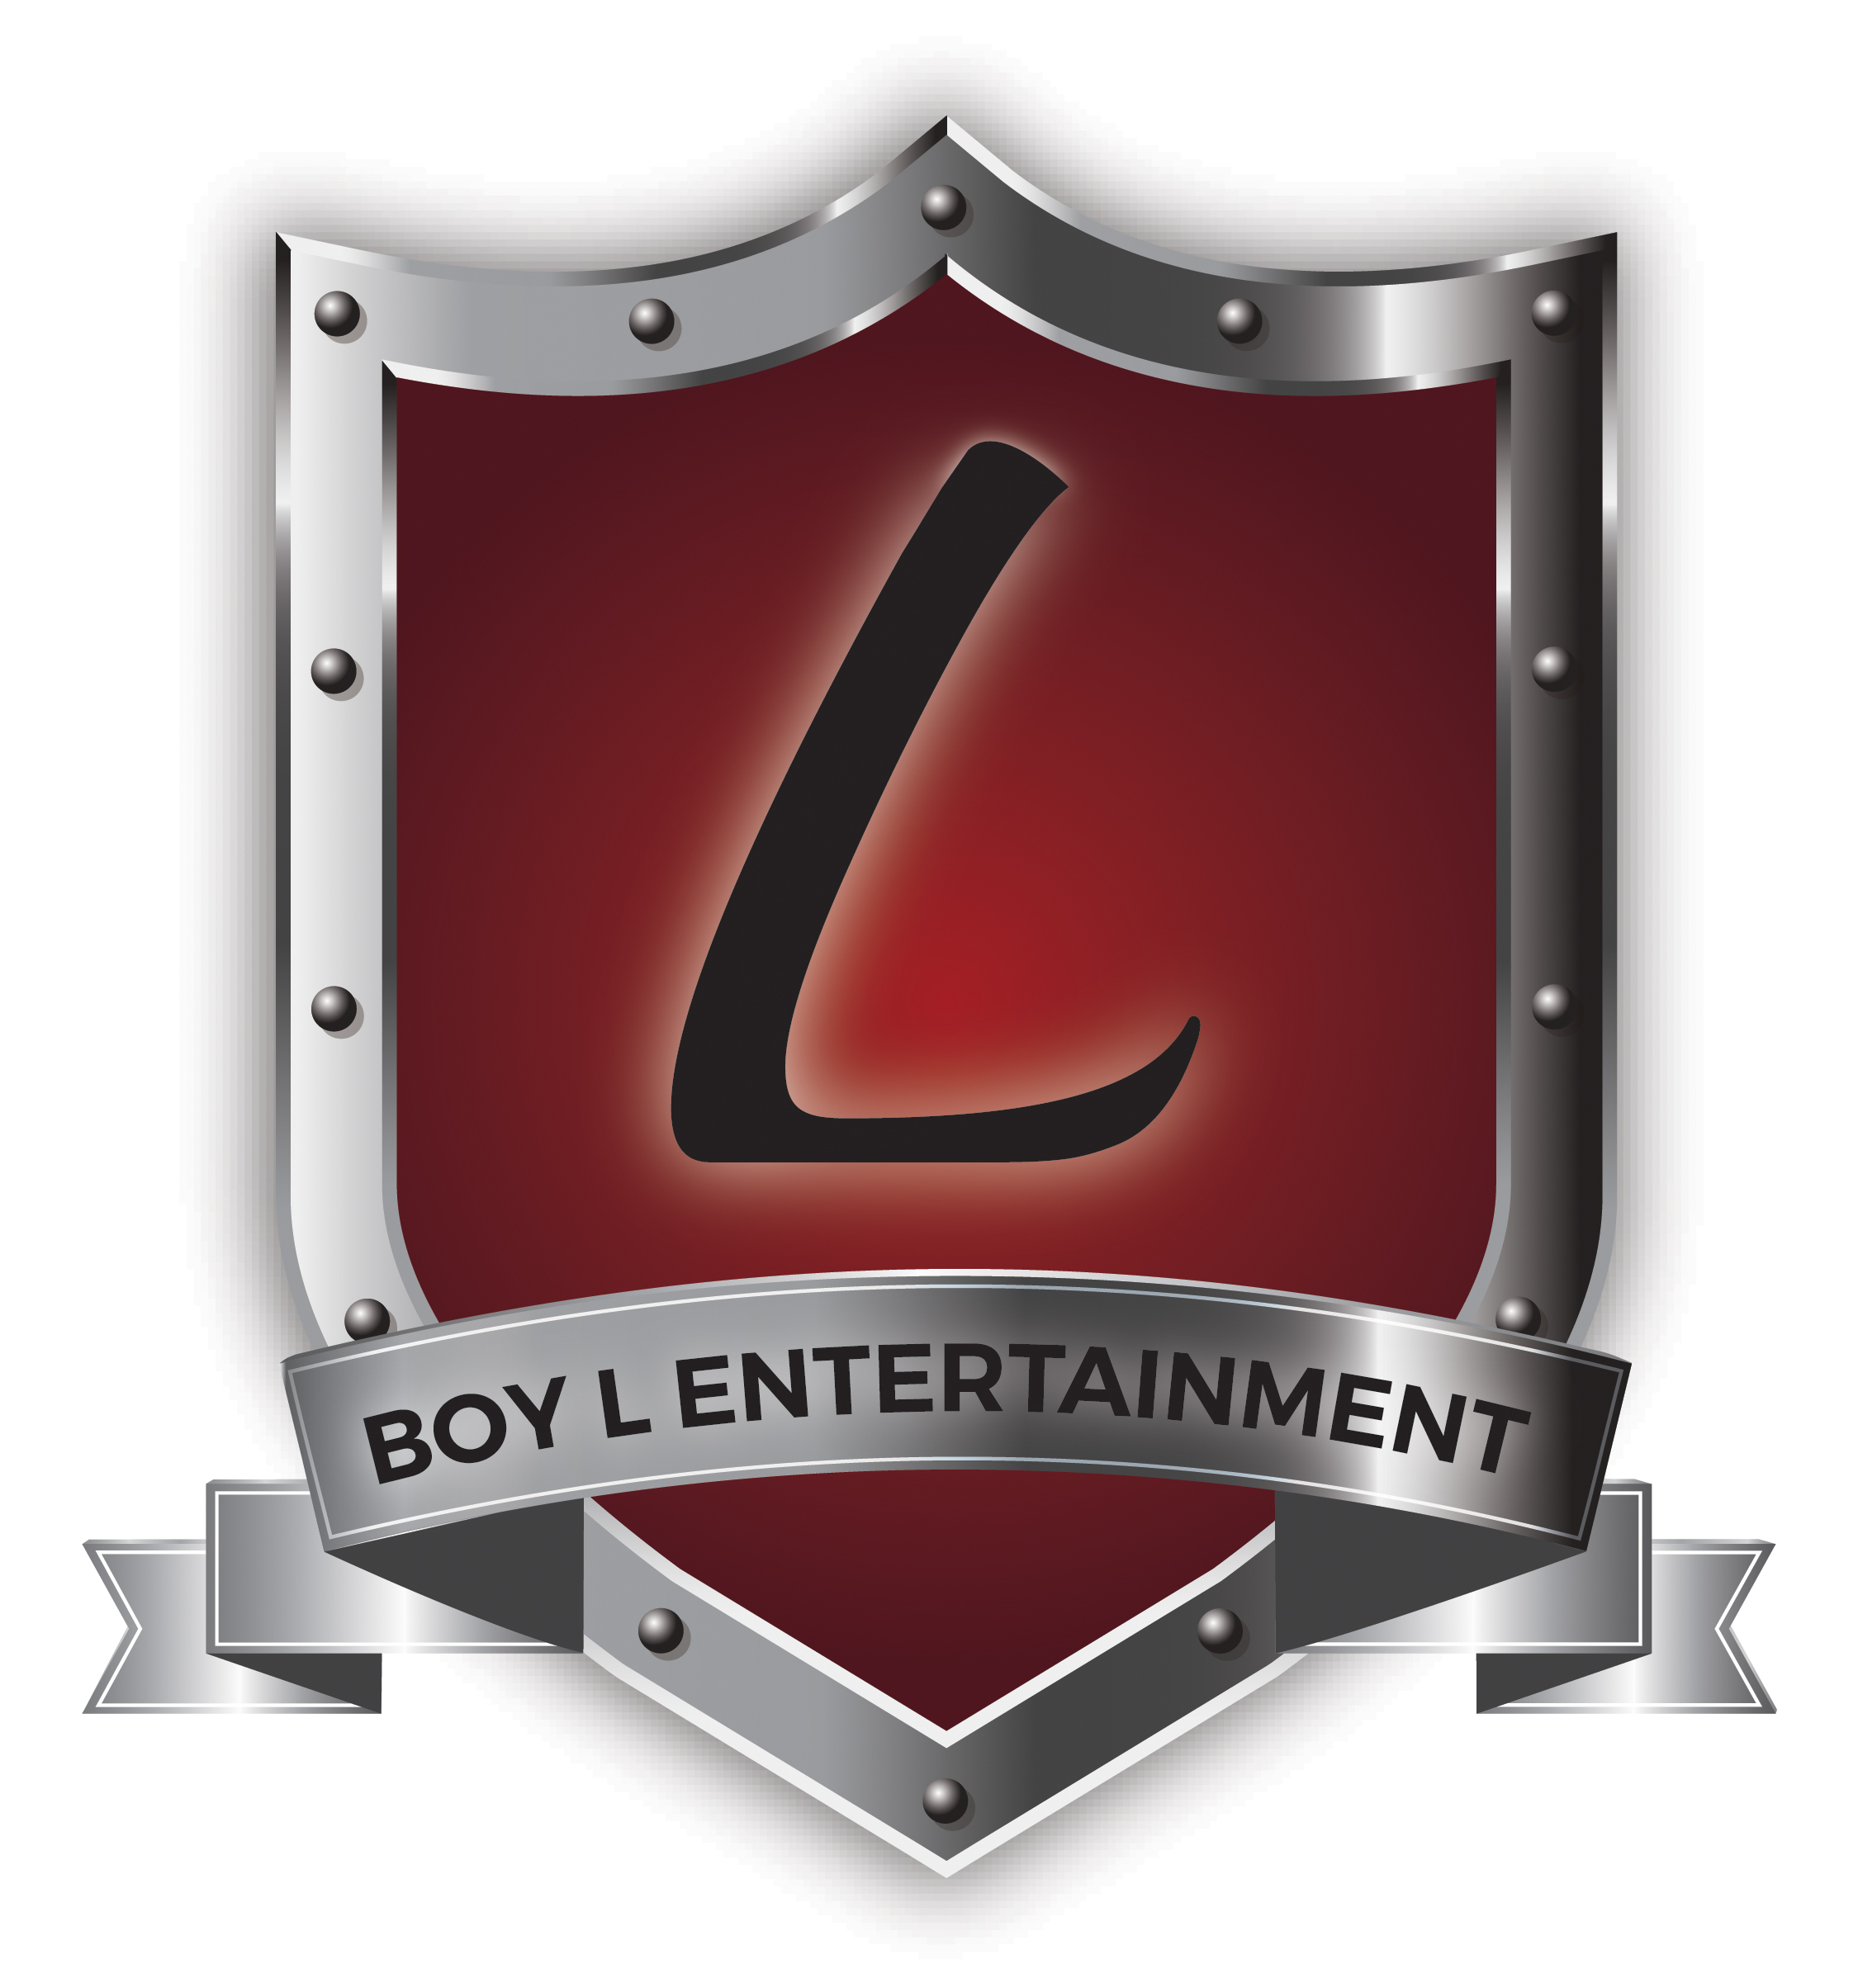 Boy L Ent LOGO Red